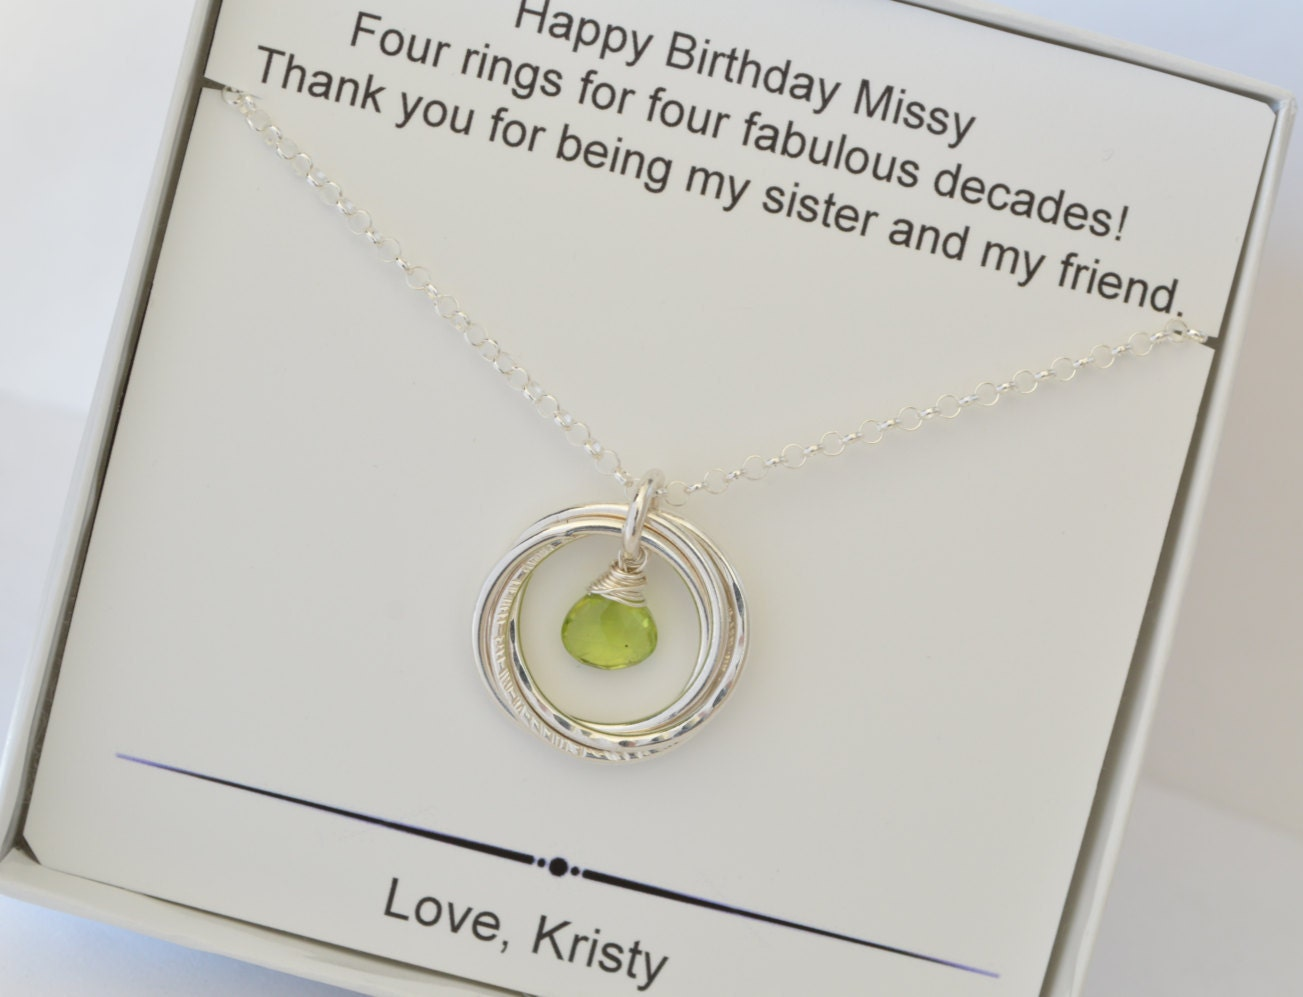 40th birthday gift for sister 4th anniversary gift sister 40th birthday gift for sister 4th anniversary gift sister jewelry peridot necklace august birthstone jewelry4 sisters best friend neck negle Gallery